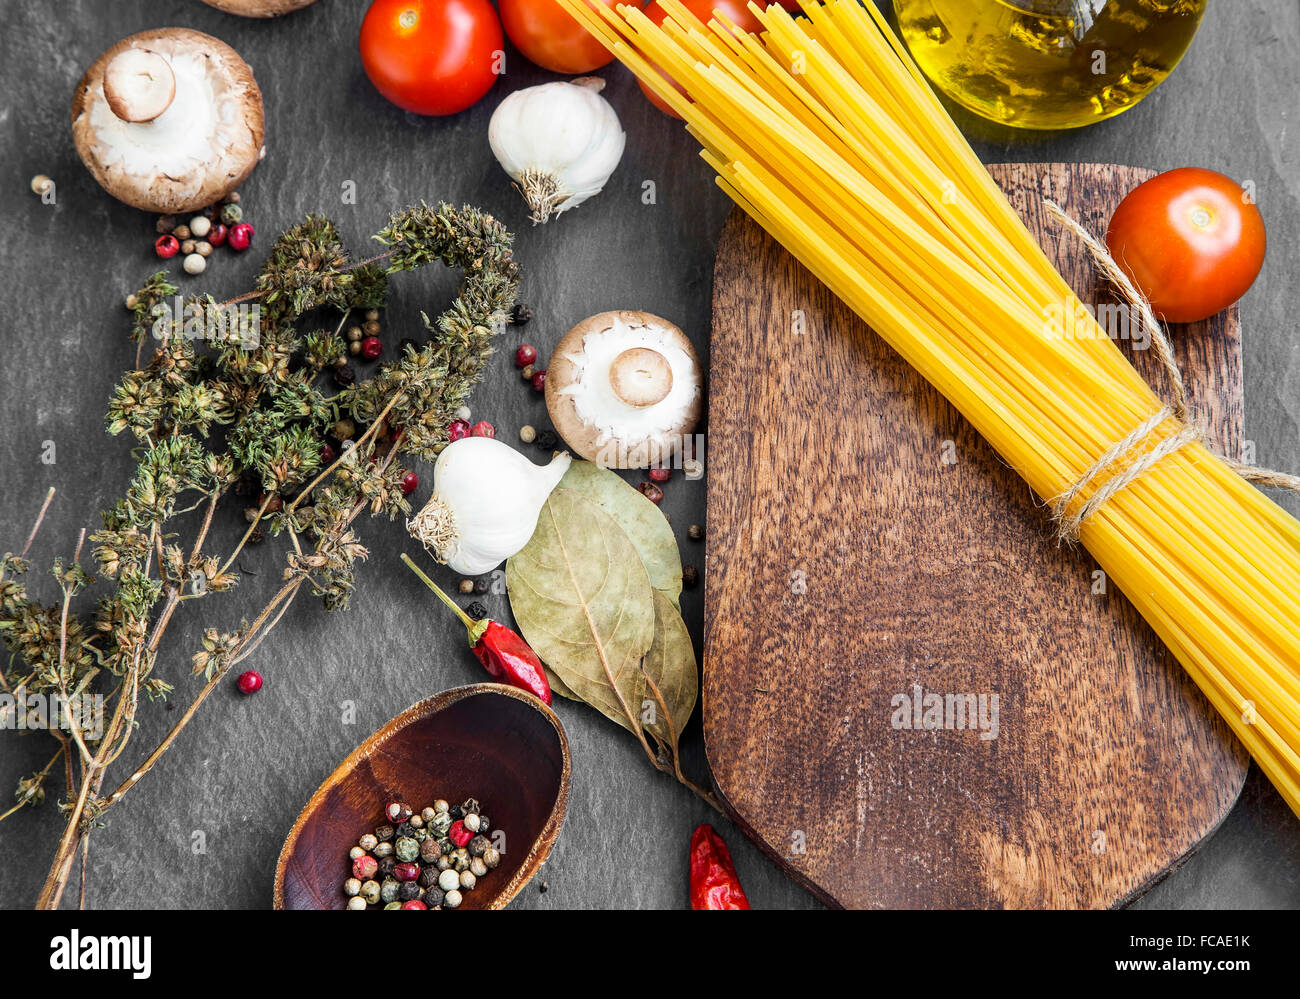 Italian meal ingredients with pasta,spices,tomatoes,olive oil,mushrooms on wooden cutting board - Stock Image